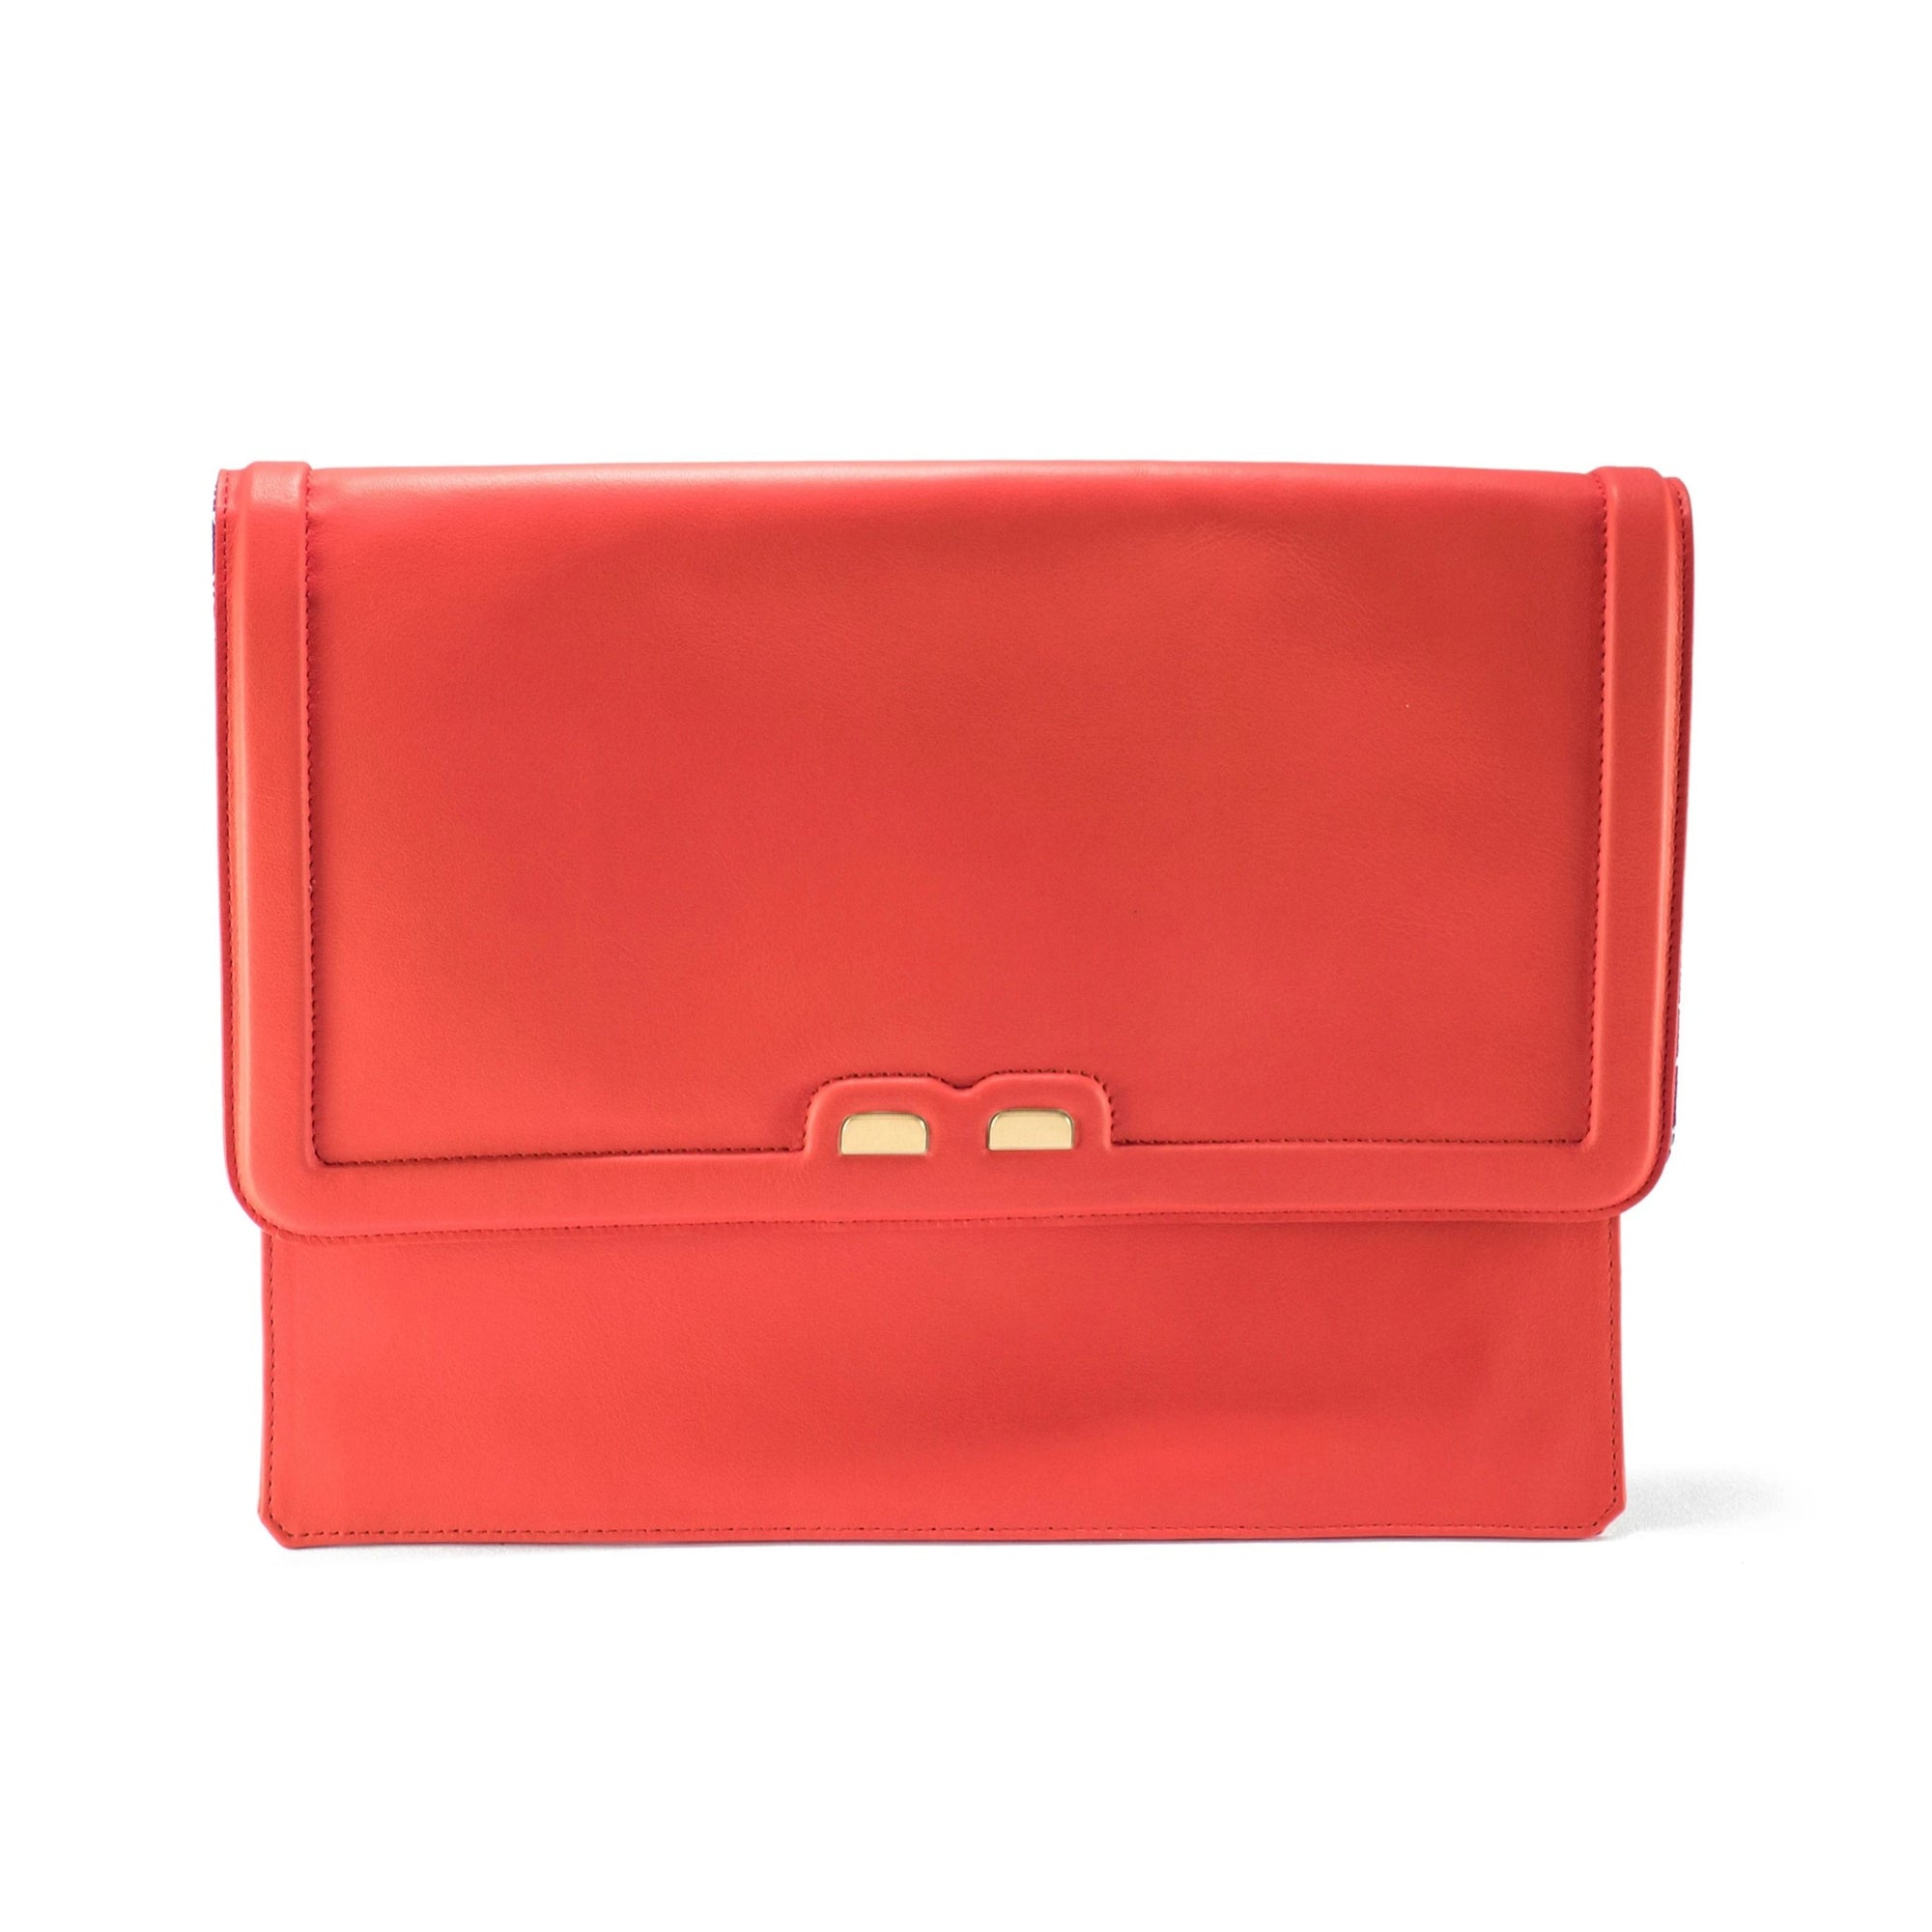 Caffery in Coral Red - BENE Handbags